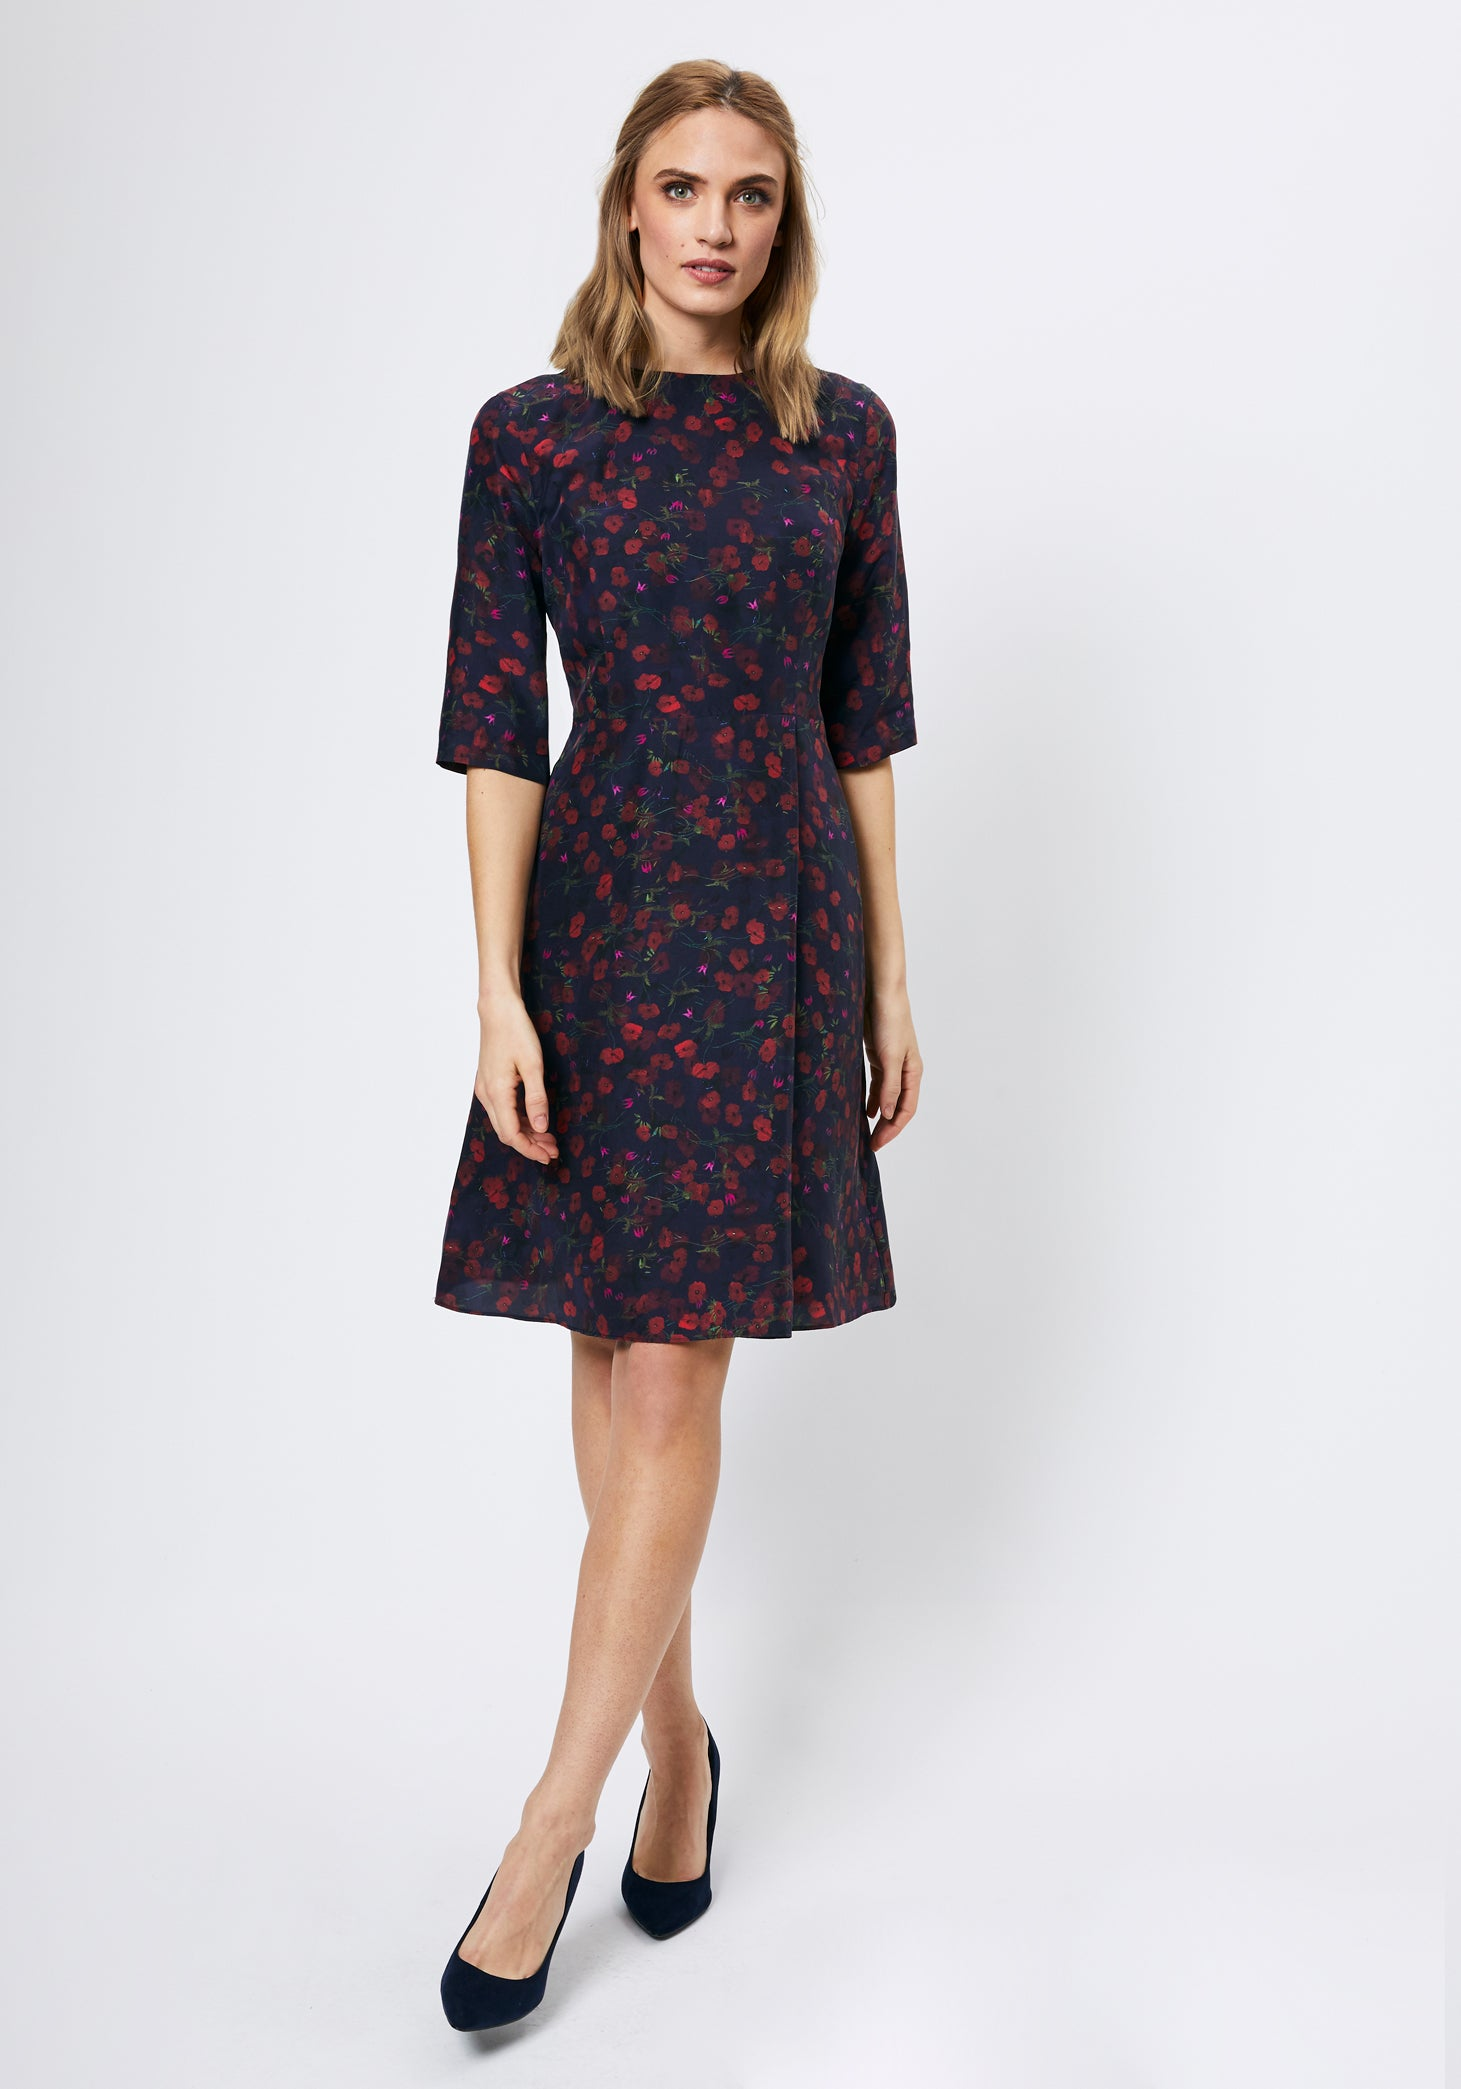 Stafford Dress in Navy Pablo Print